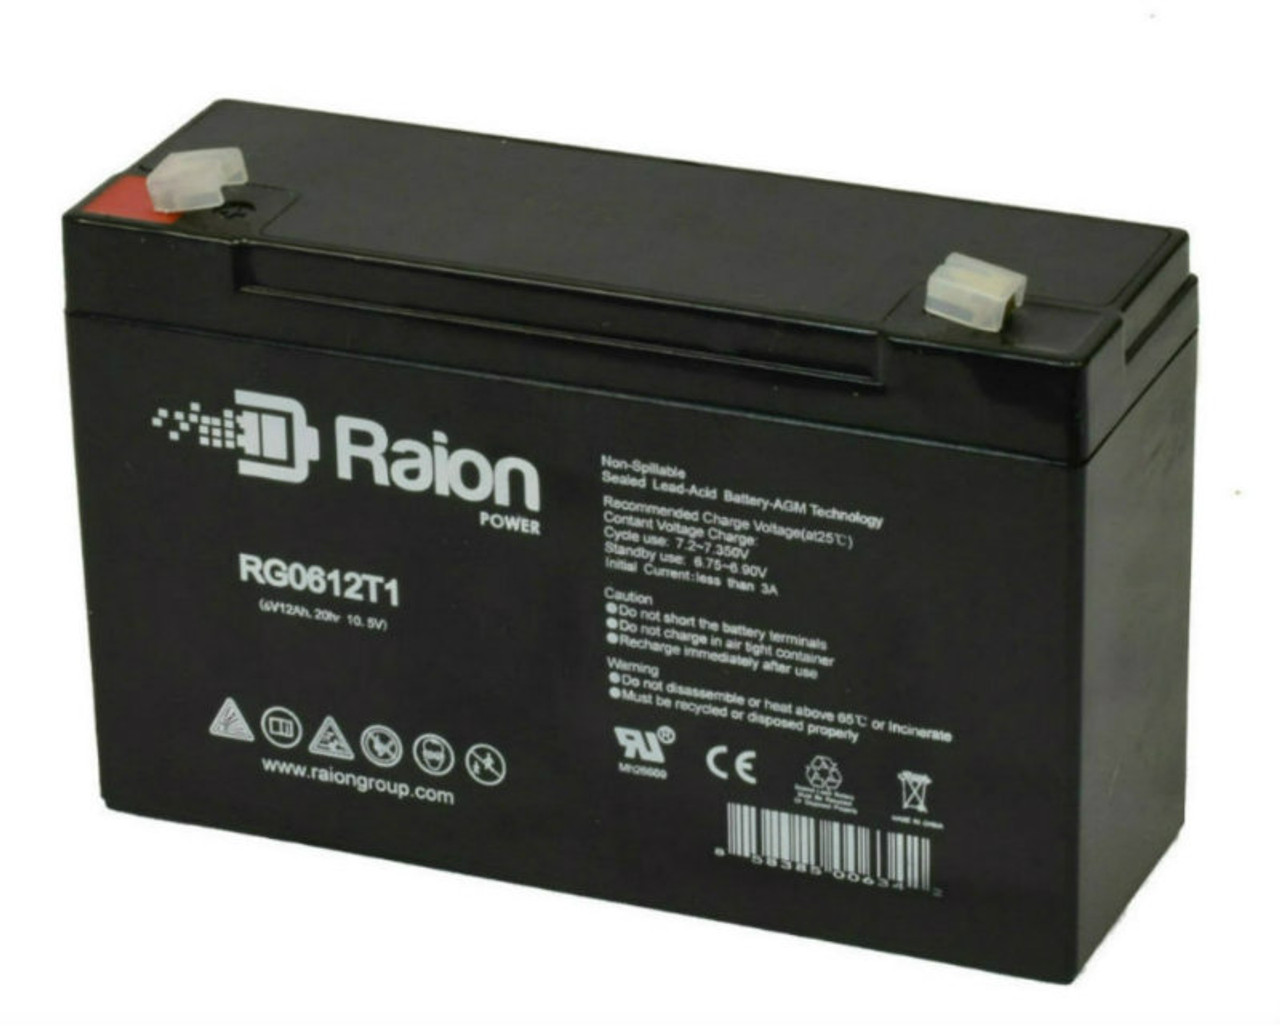 Raion Power RG06120T1 Replacement Battery Pack for Chloride CMF50 emergency light